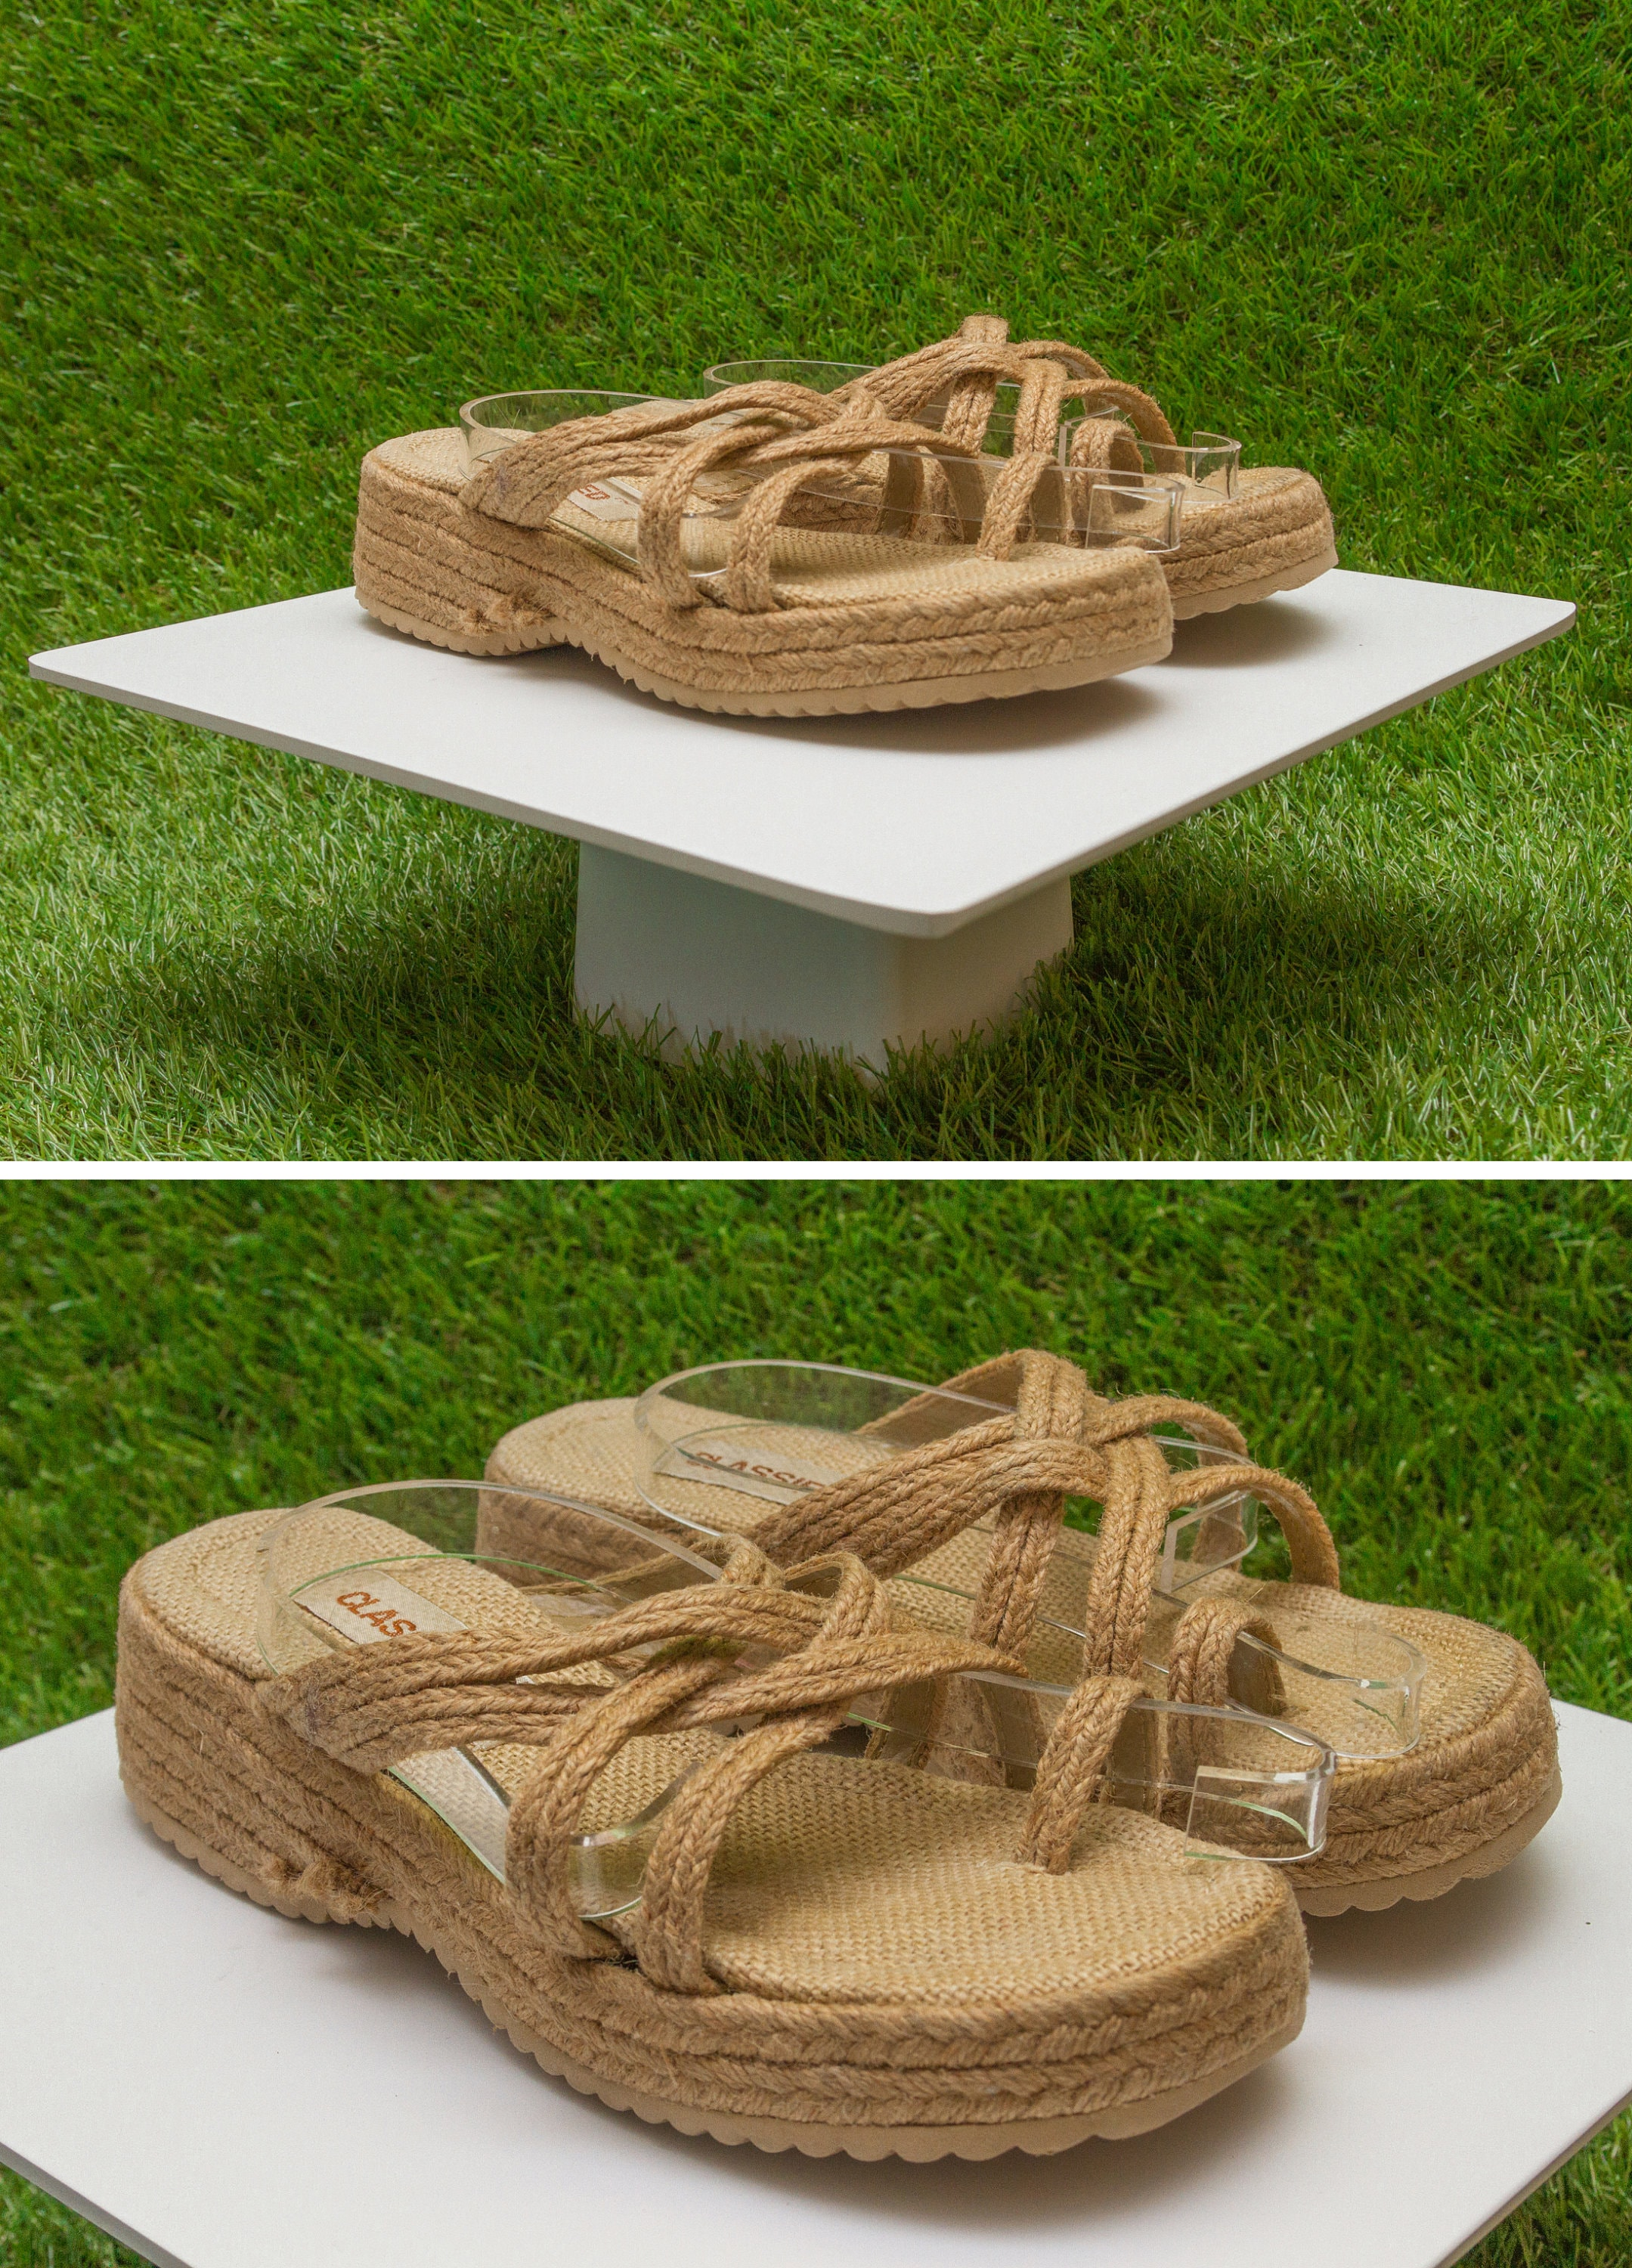 Vintage 90s Y2K Classified Woven Raffia Grass Braided Strappy Tan Light Brown Summer Thick Wedge Slip On Platform Mule Sandal US 5  5.5